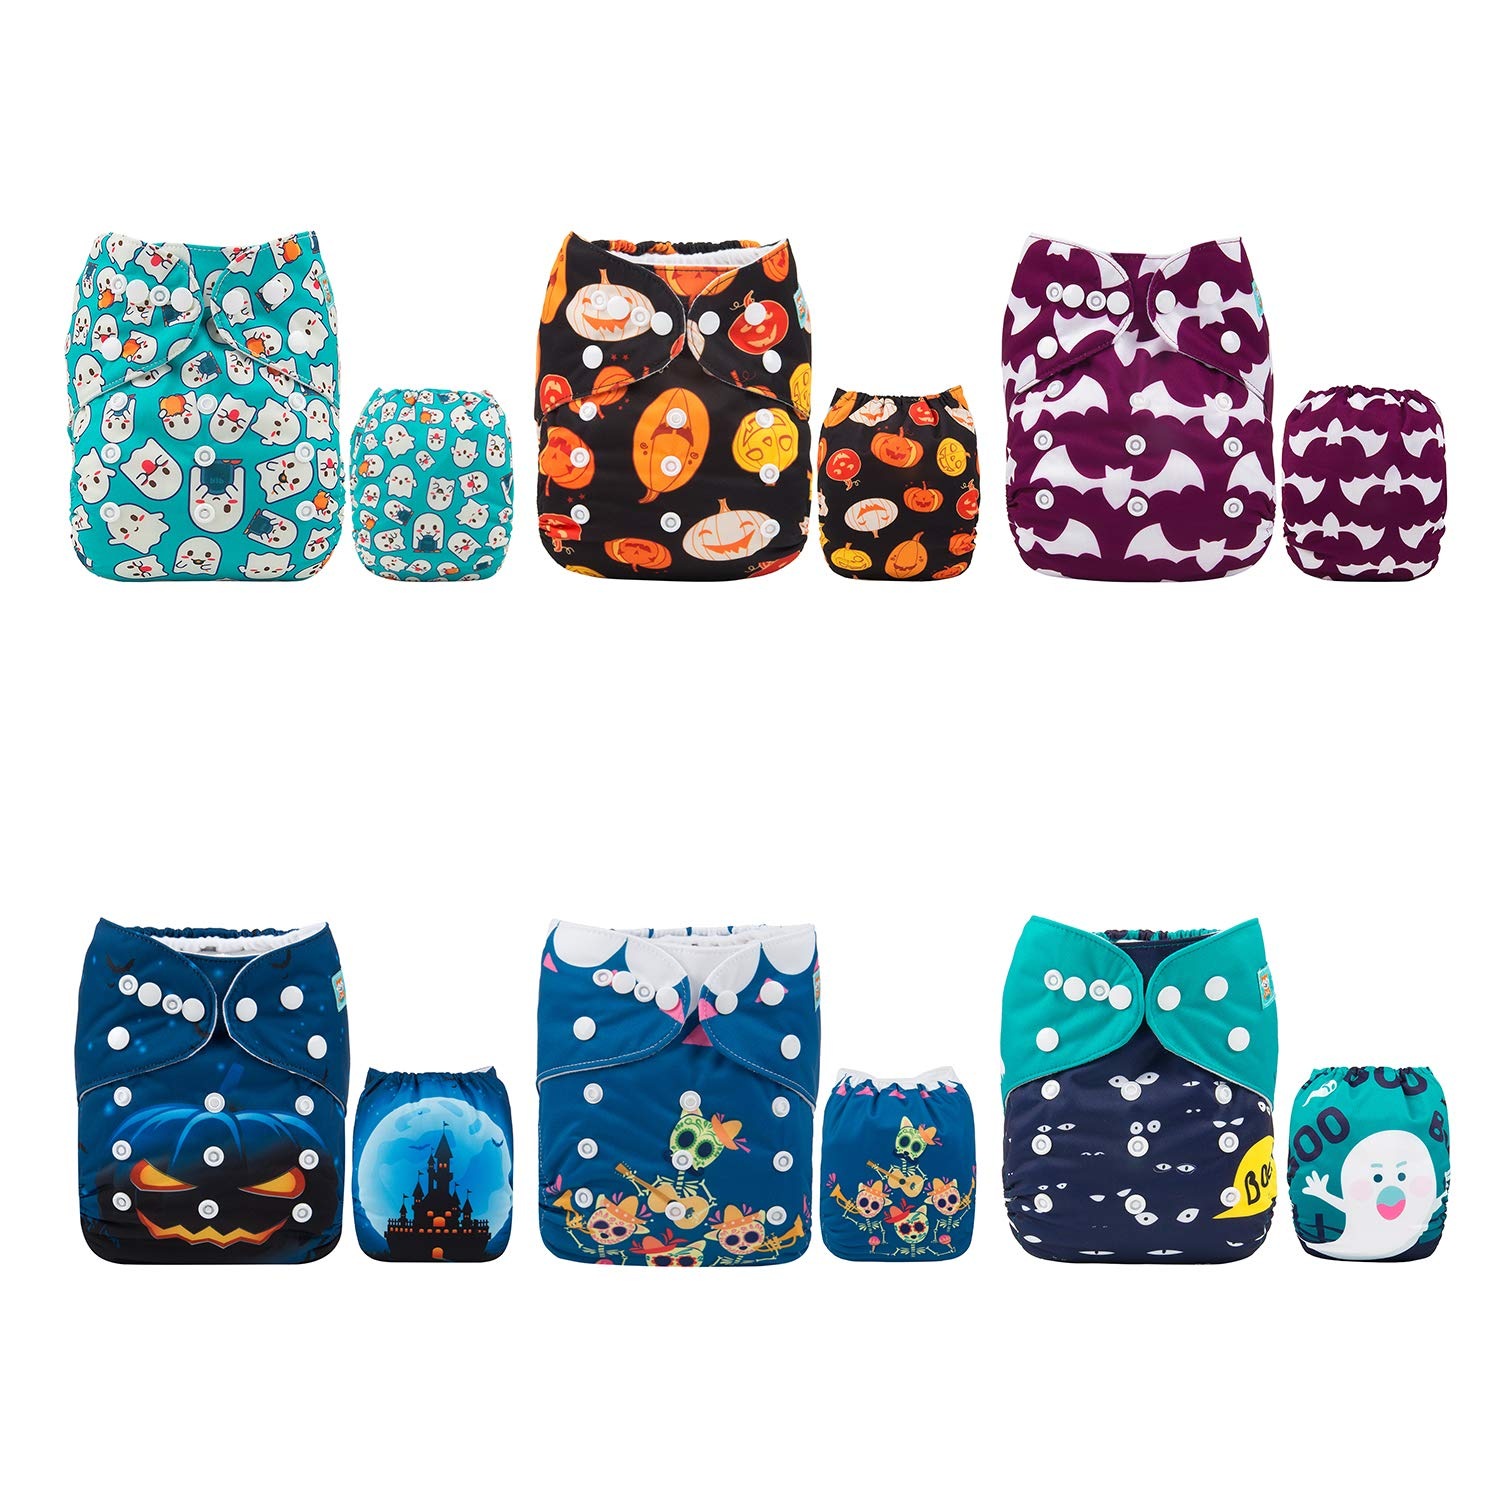 ALVABABY Cloth Diaper, One Size Adjustable Washable Reusable for Baby Girls and Boys 6 Pack with 12 Inserts (Sets 6DM63, All in one)